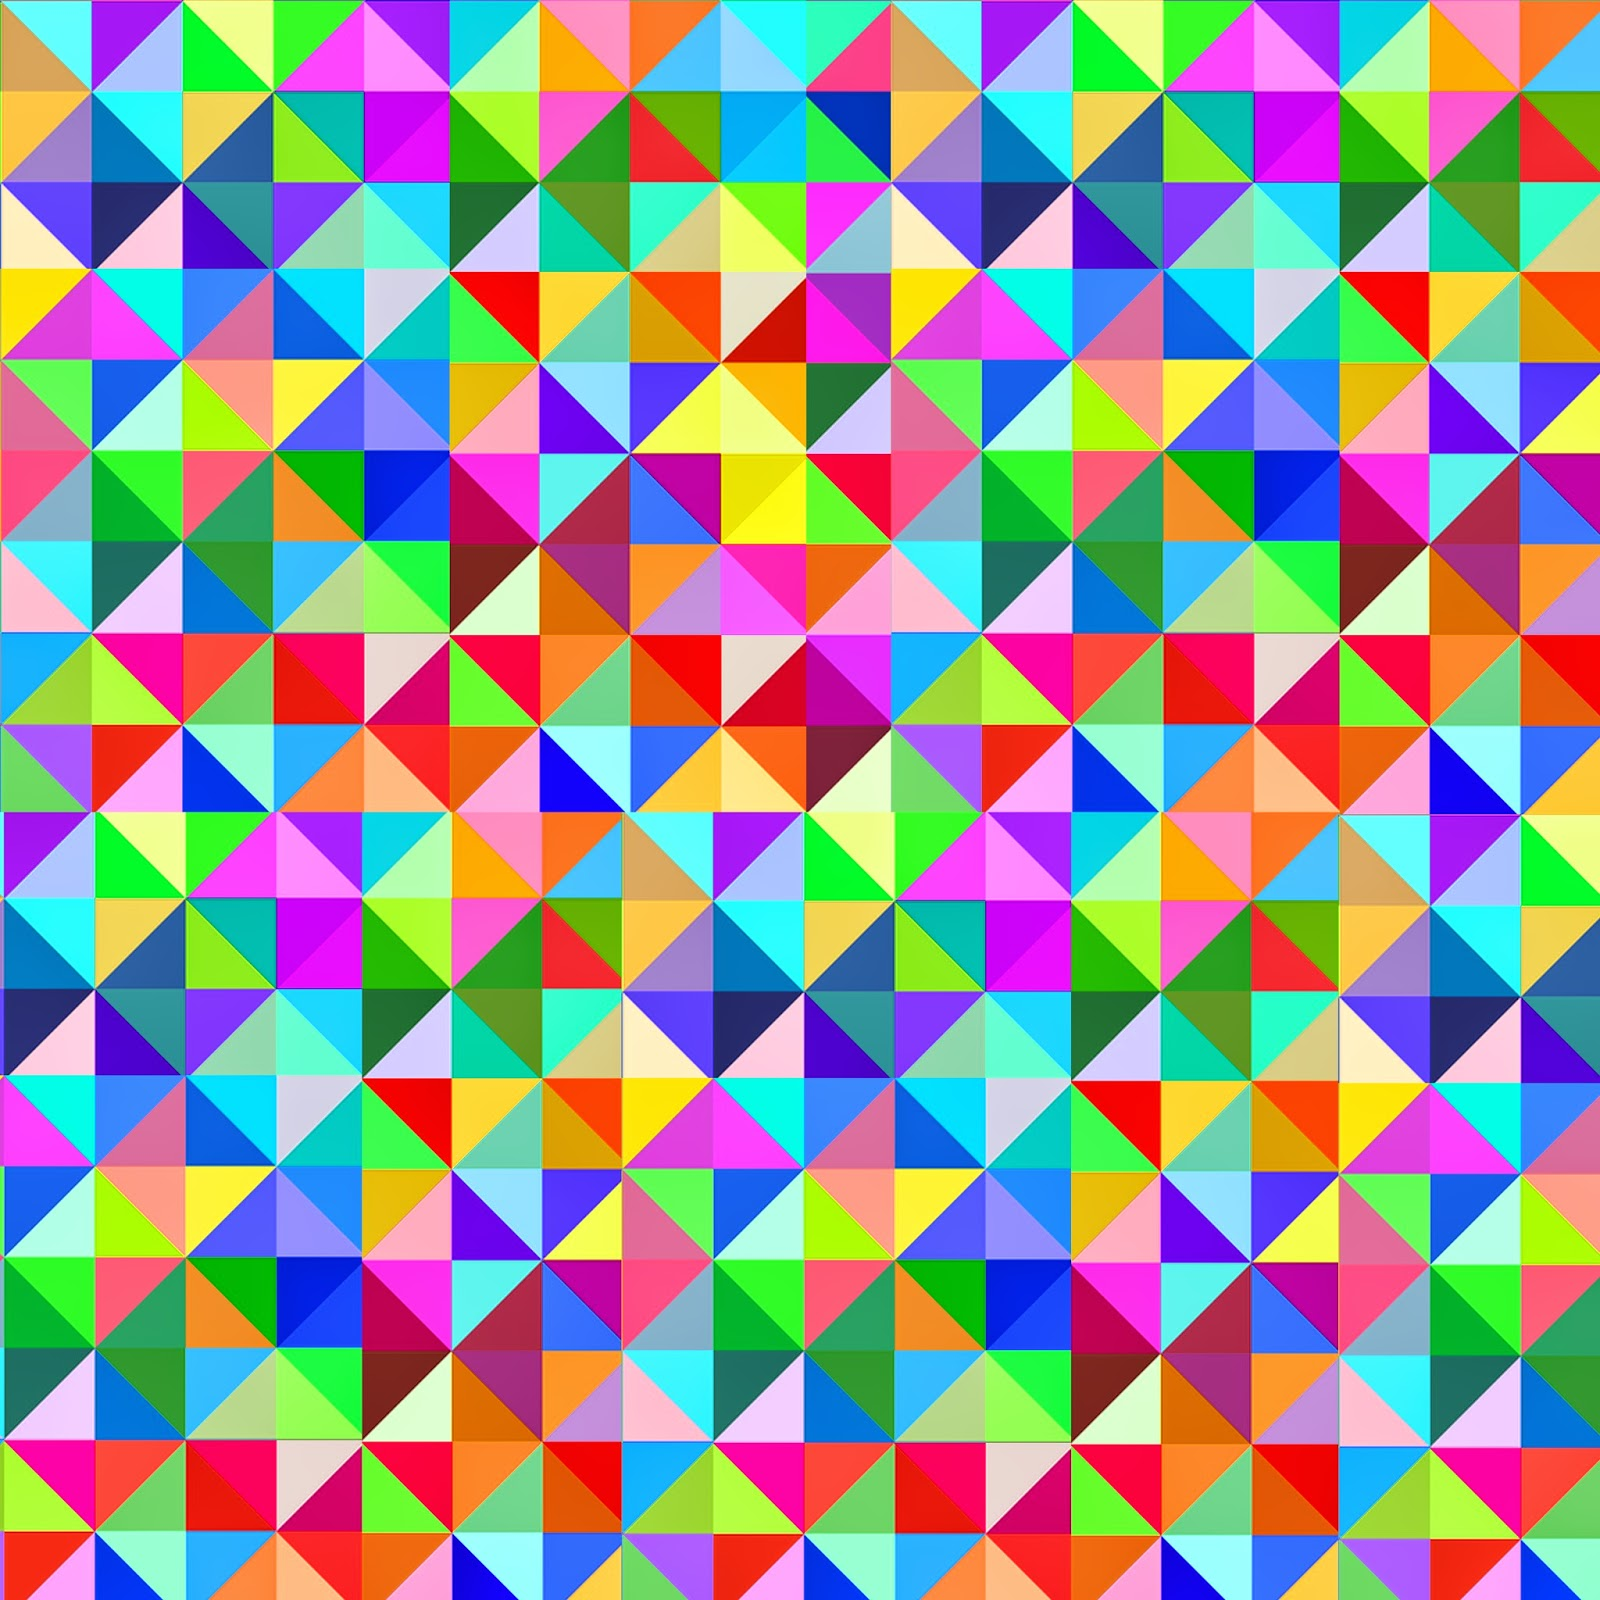 Wall Tiles Designs Doodlecraft Gigantic Geometric Colorful Triangle Freebies